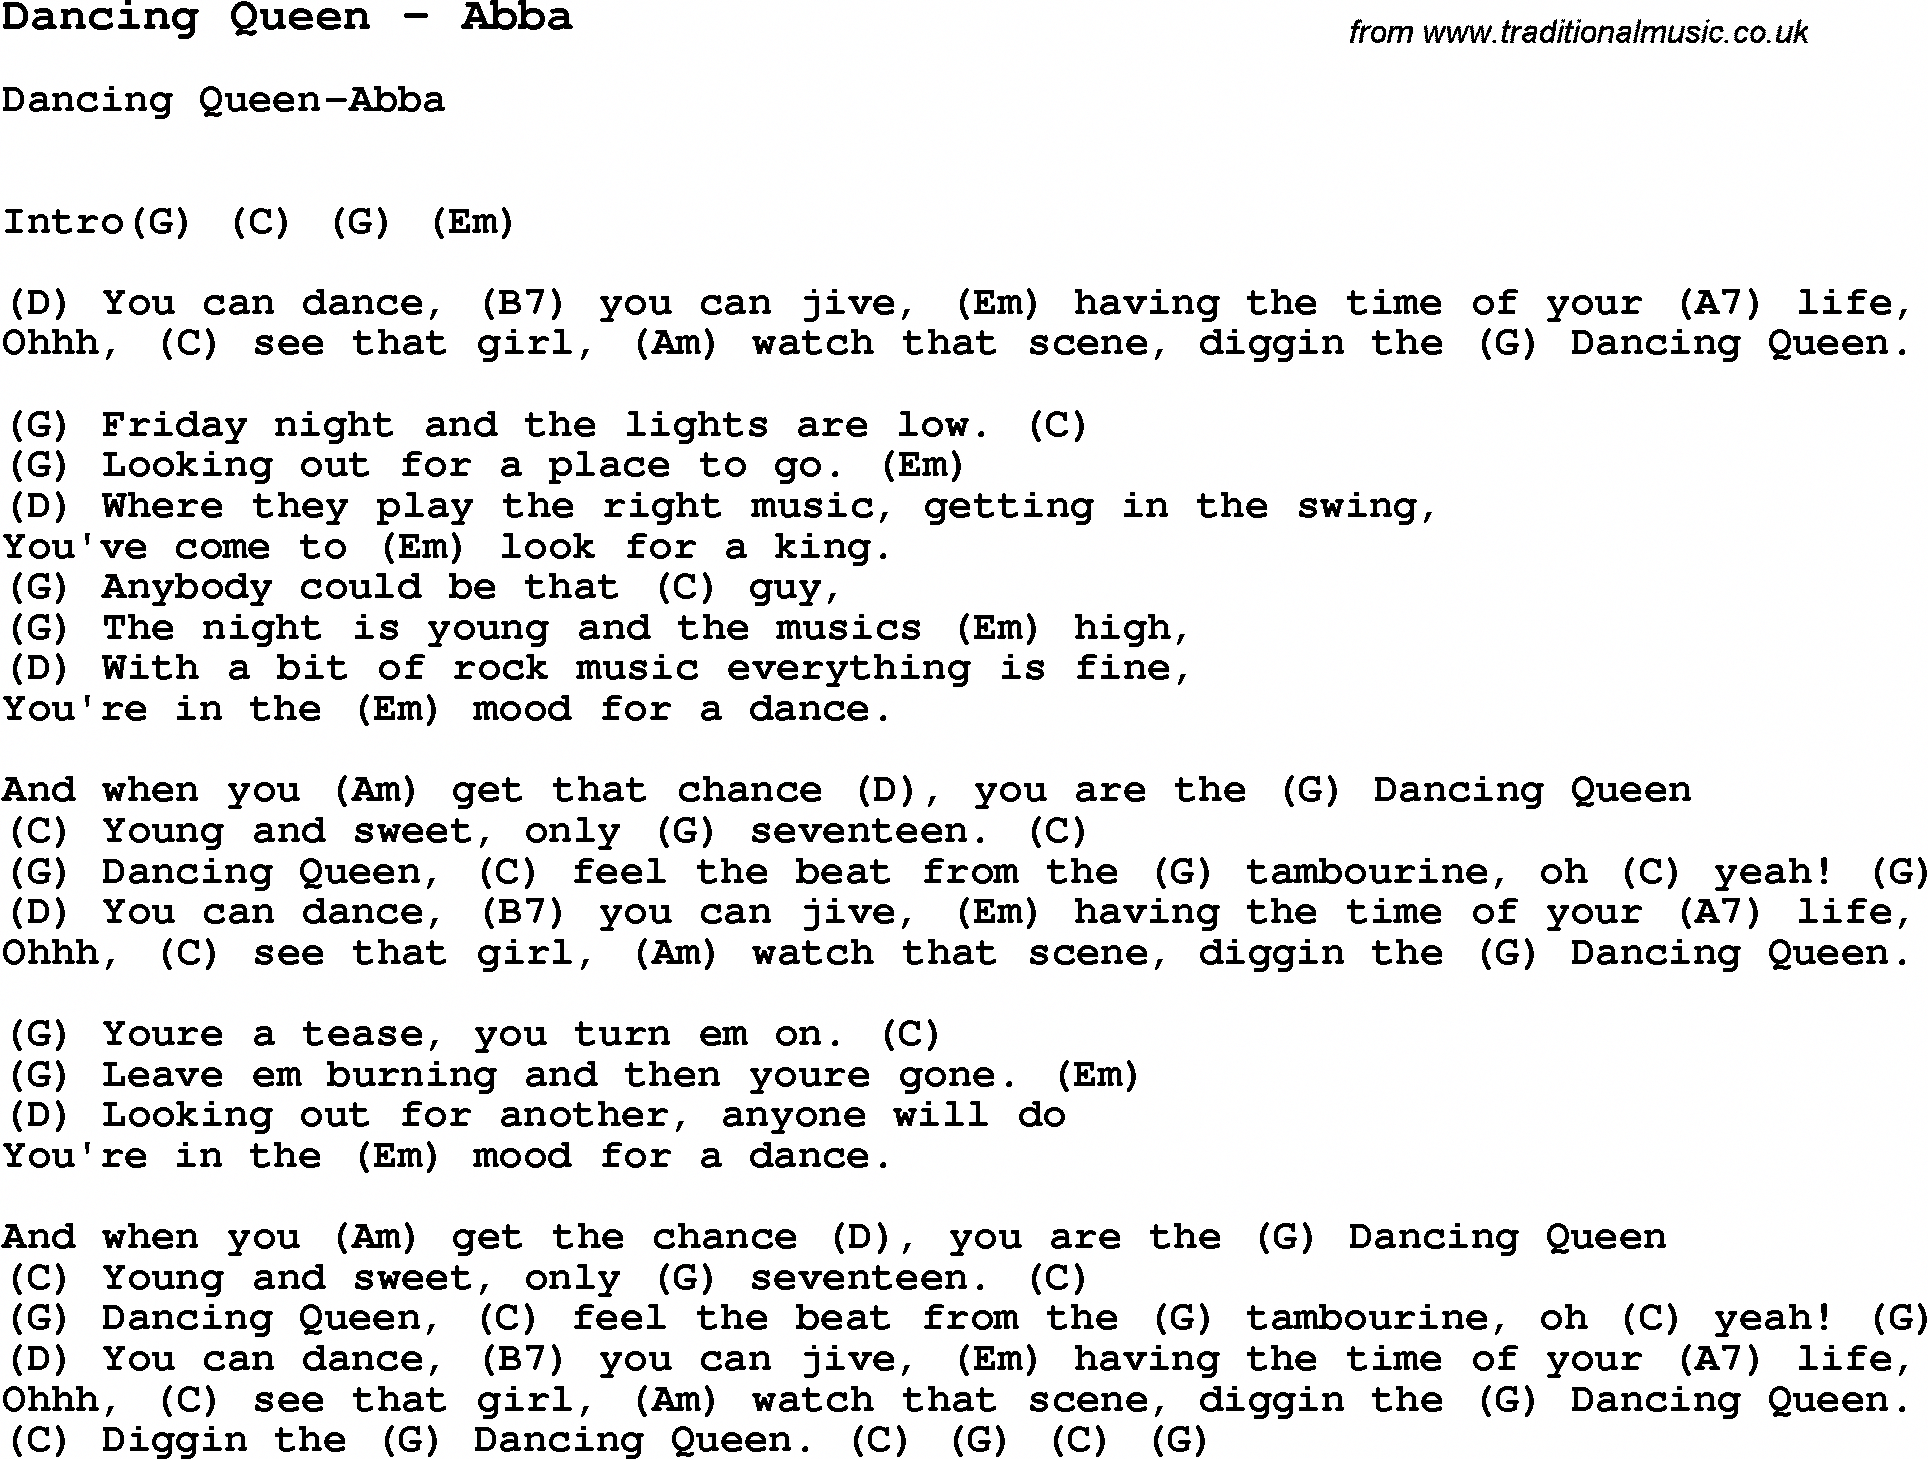 Song Dancing Queen By Abba With Lyrics For Vocal Performance And Accompaniment Chords For Ukulele Gu Ukulele Chords Songs Ukulele Songs Ukulele Songs Popular